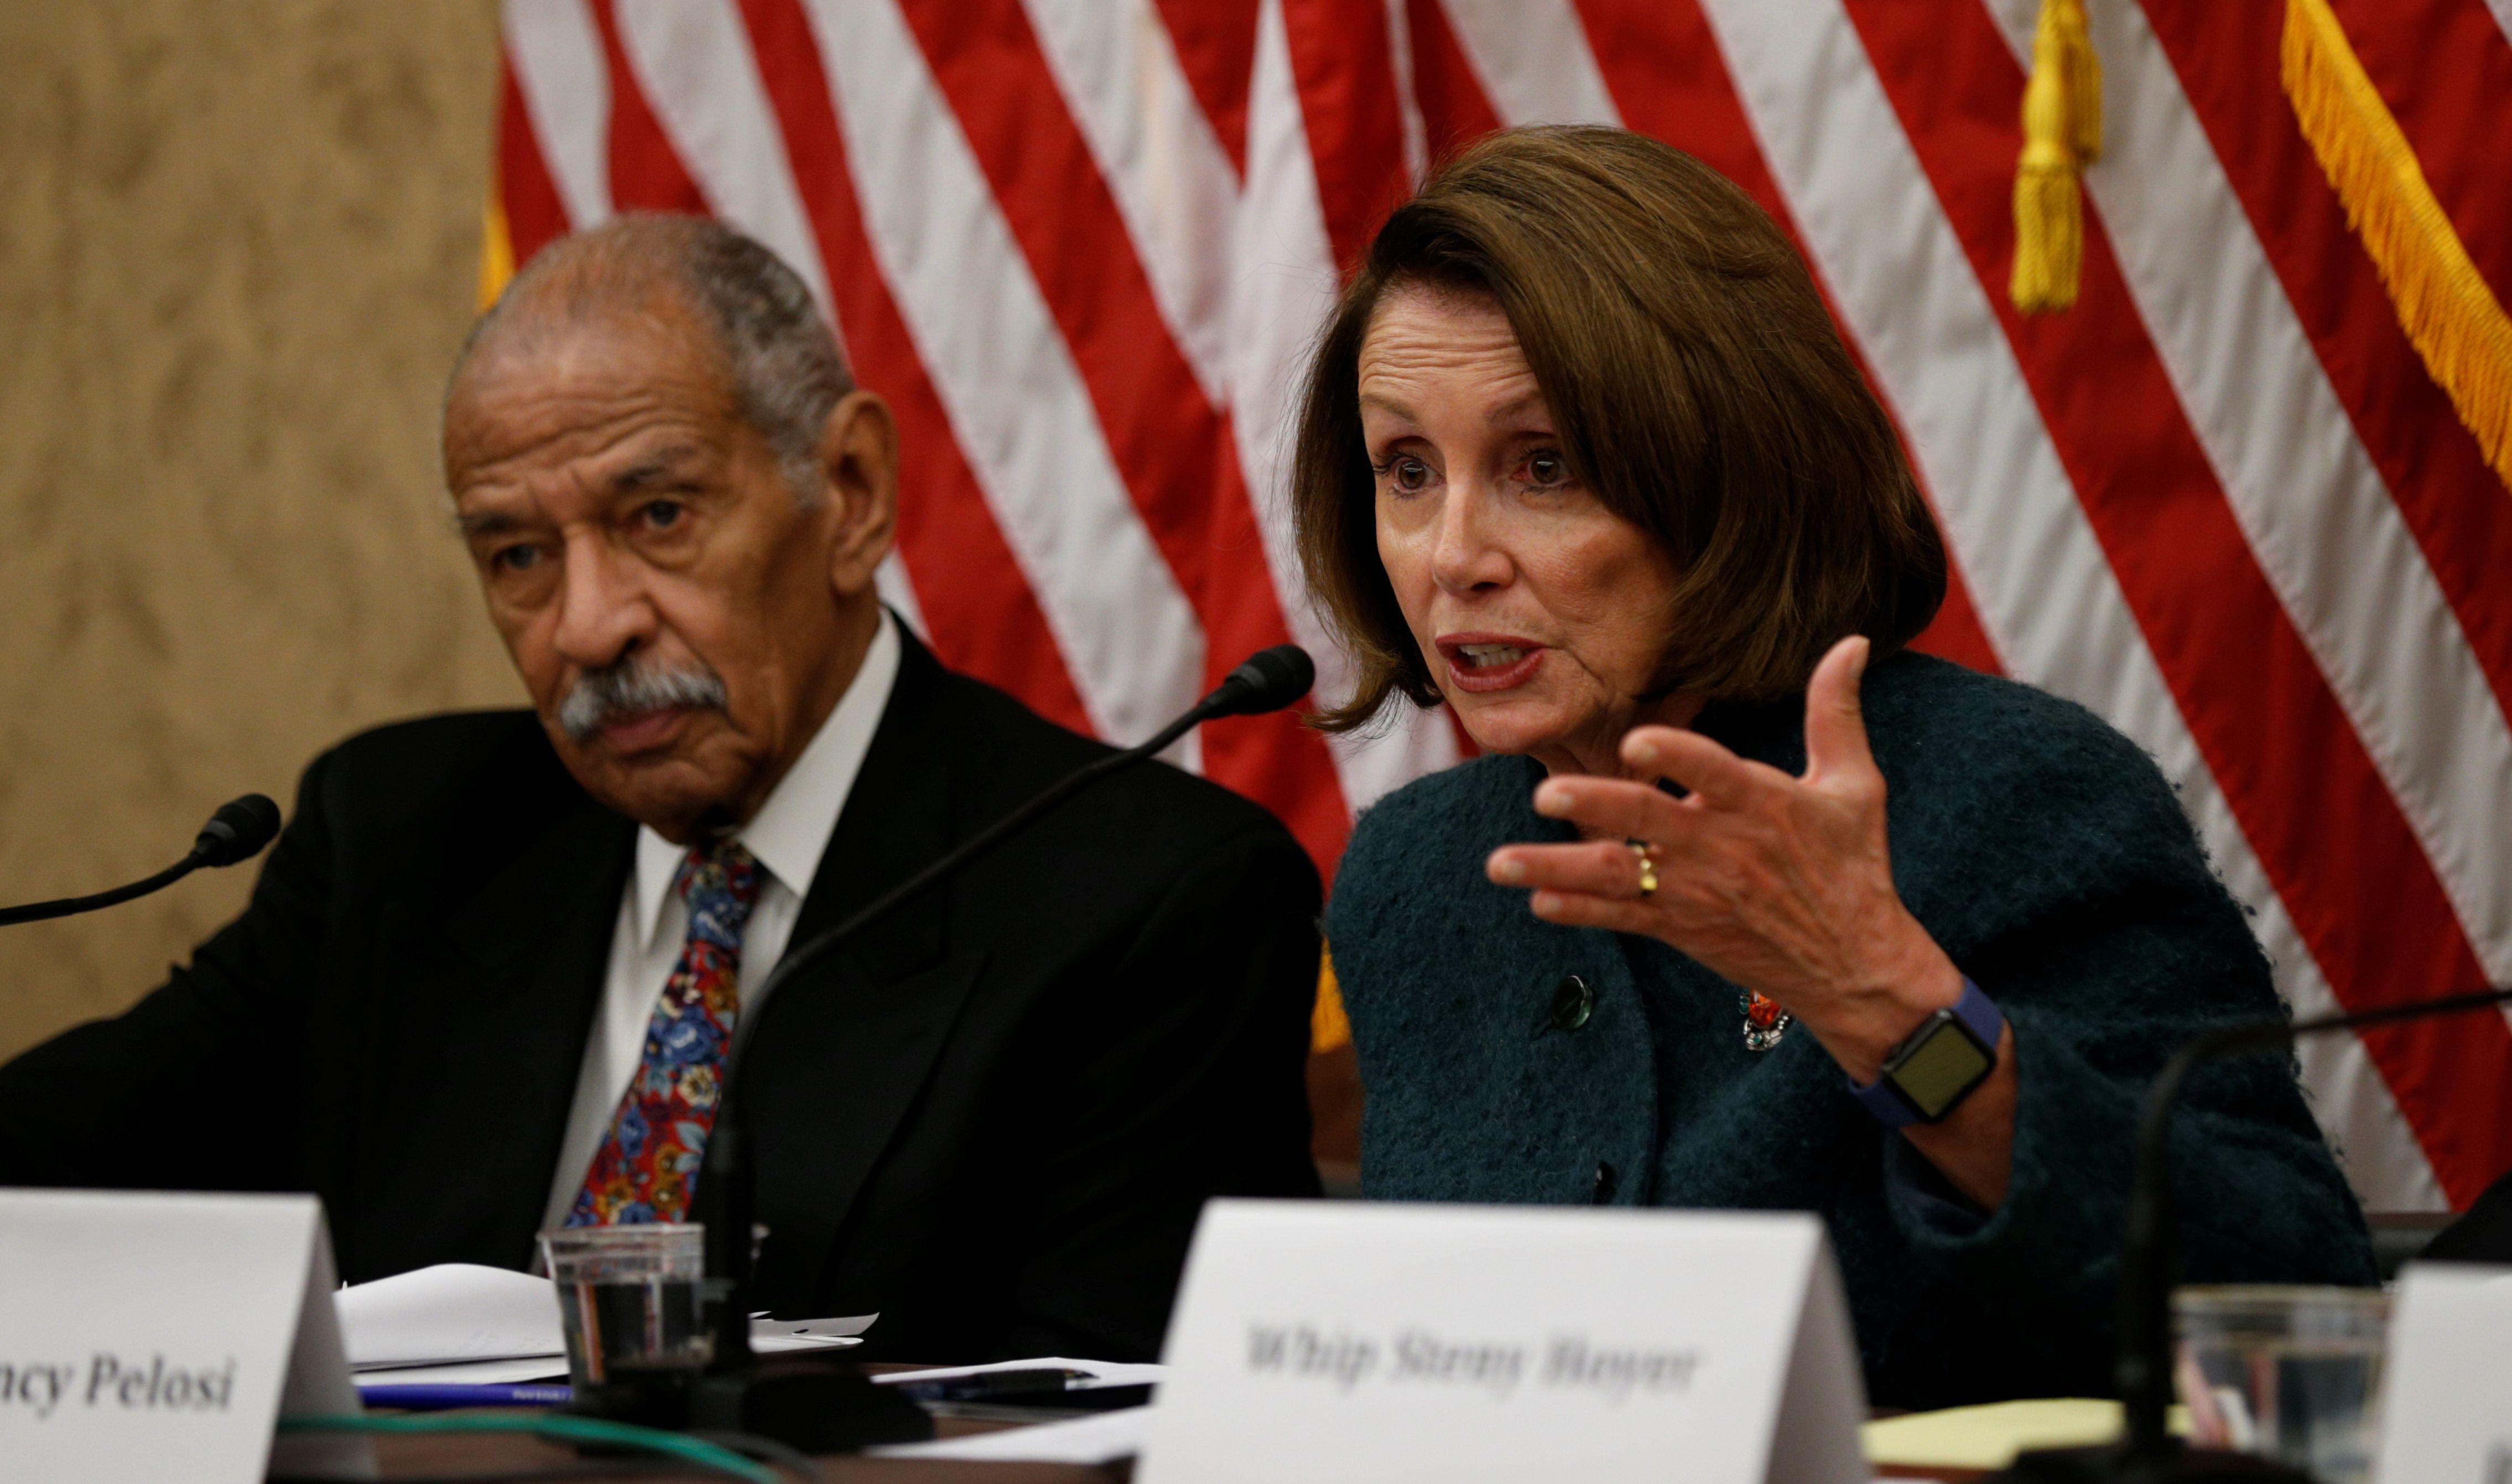 House Minority leader Nancy Pelosi and Rep. John Conyers take part in a discussion panel on President Trump's Muslim and refugee ban in the U.S. Capitol in Washington, U.S., February 2, 2017.  REUTERS/Kevin Lamarque